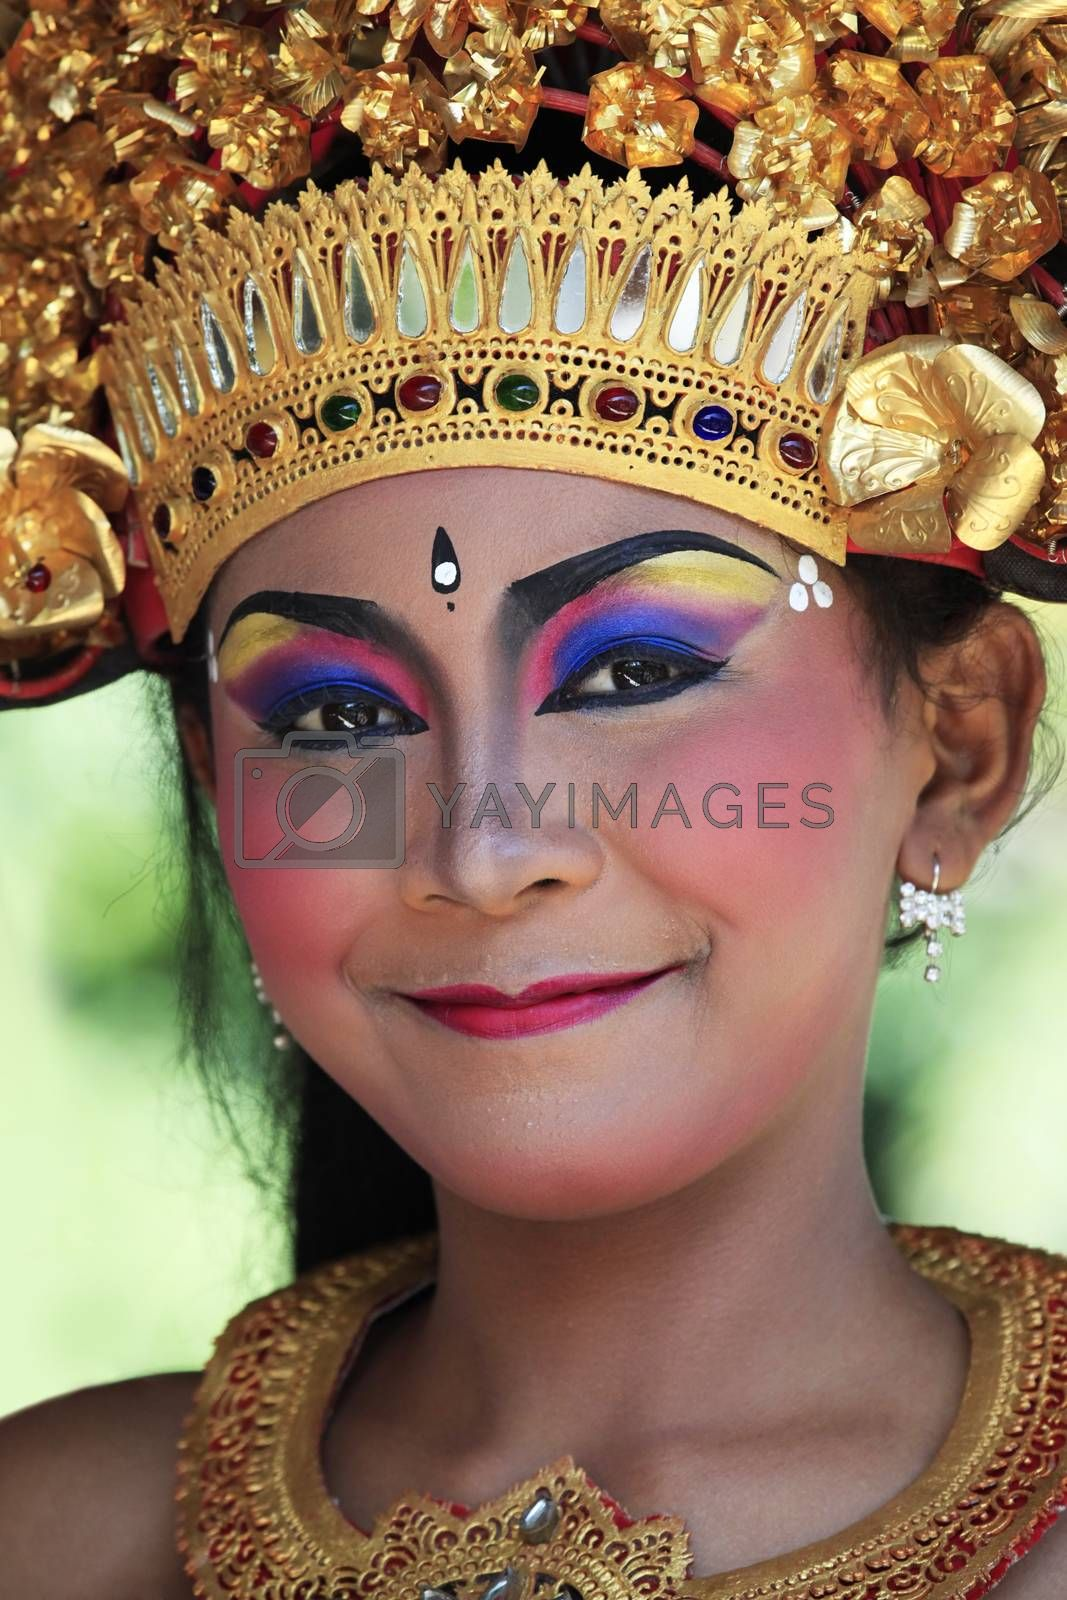 Bali, Indonesia - Jule 04, 2010: Portrait of the young smiling girl in national clothes to Bali 4 Jule, 2010. Indonesia